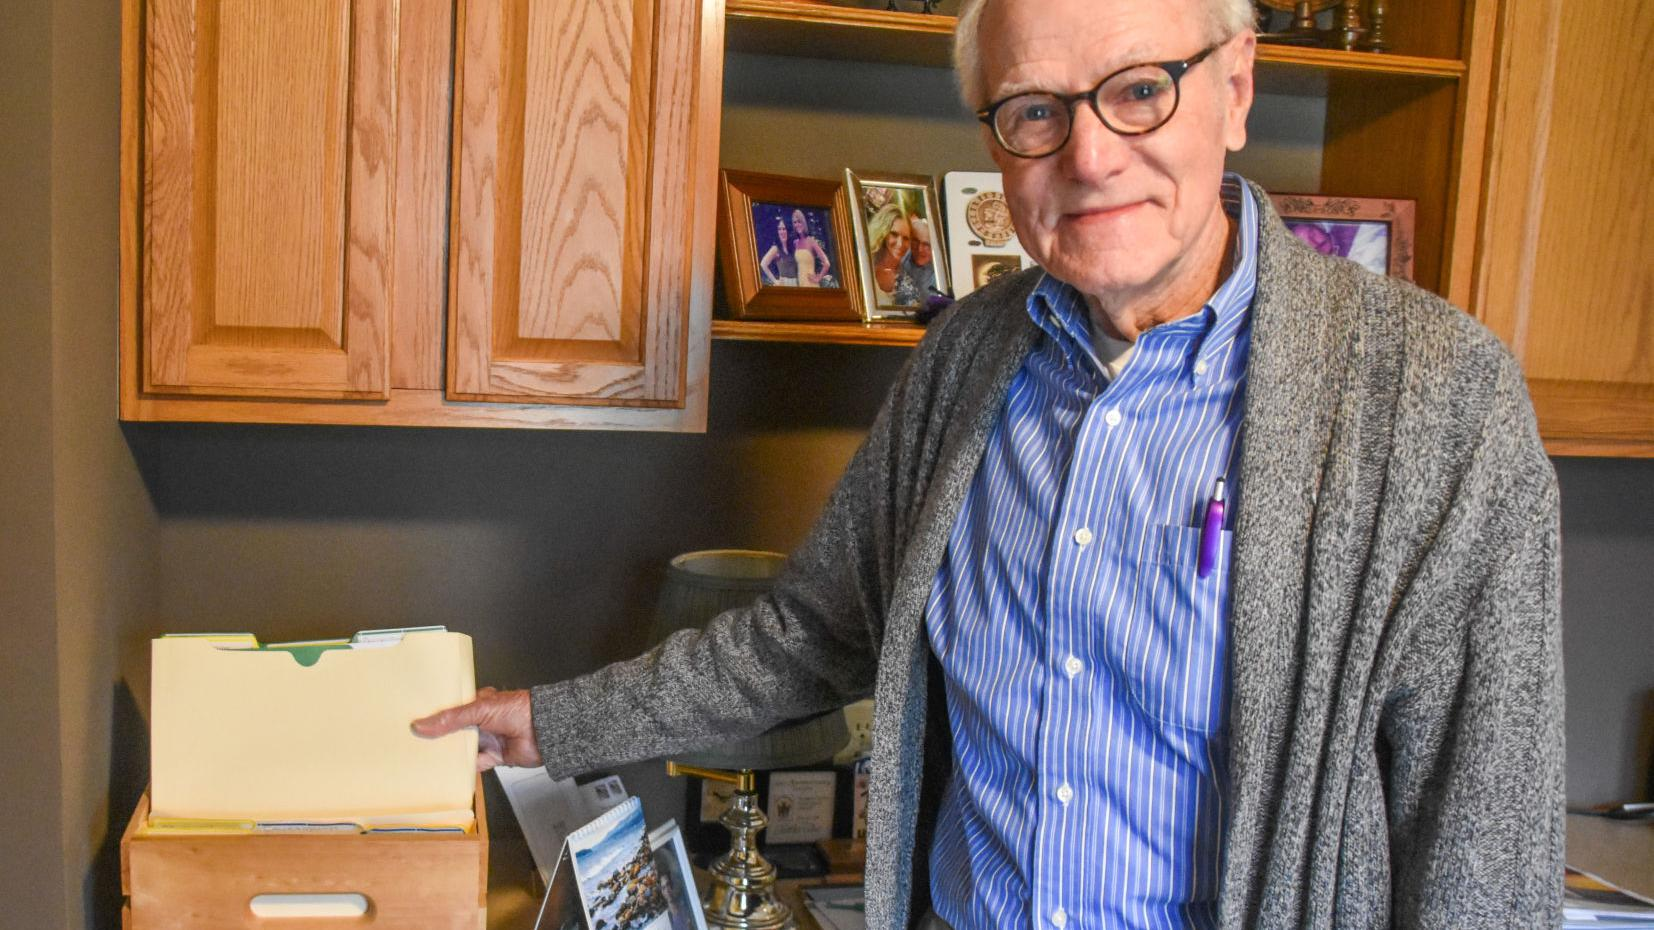 Watch now: Retired Eastern Illinois University professor helps readers explore state historic sites